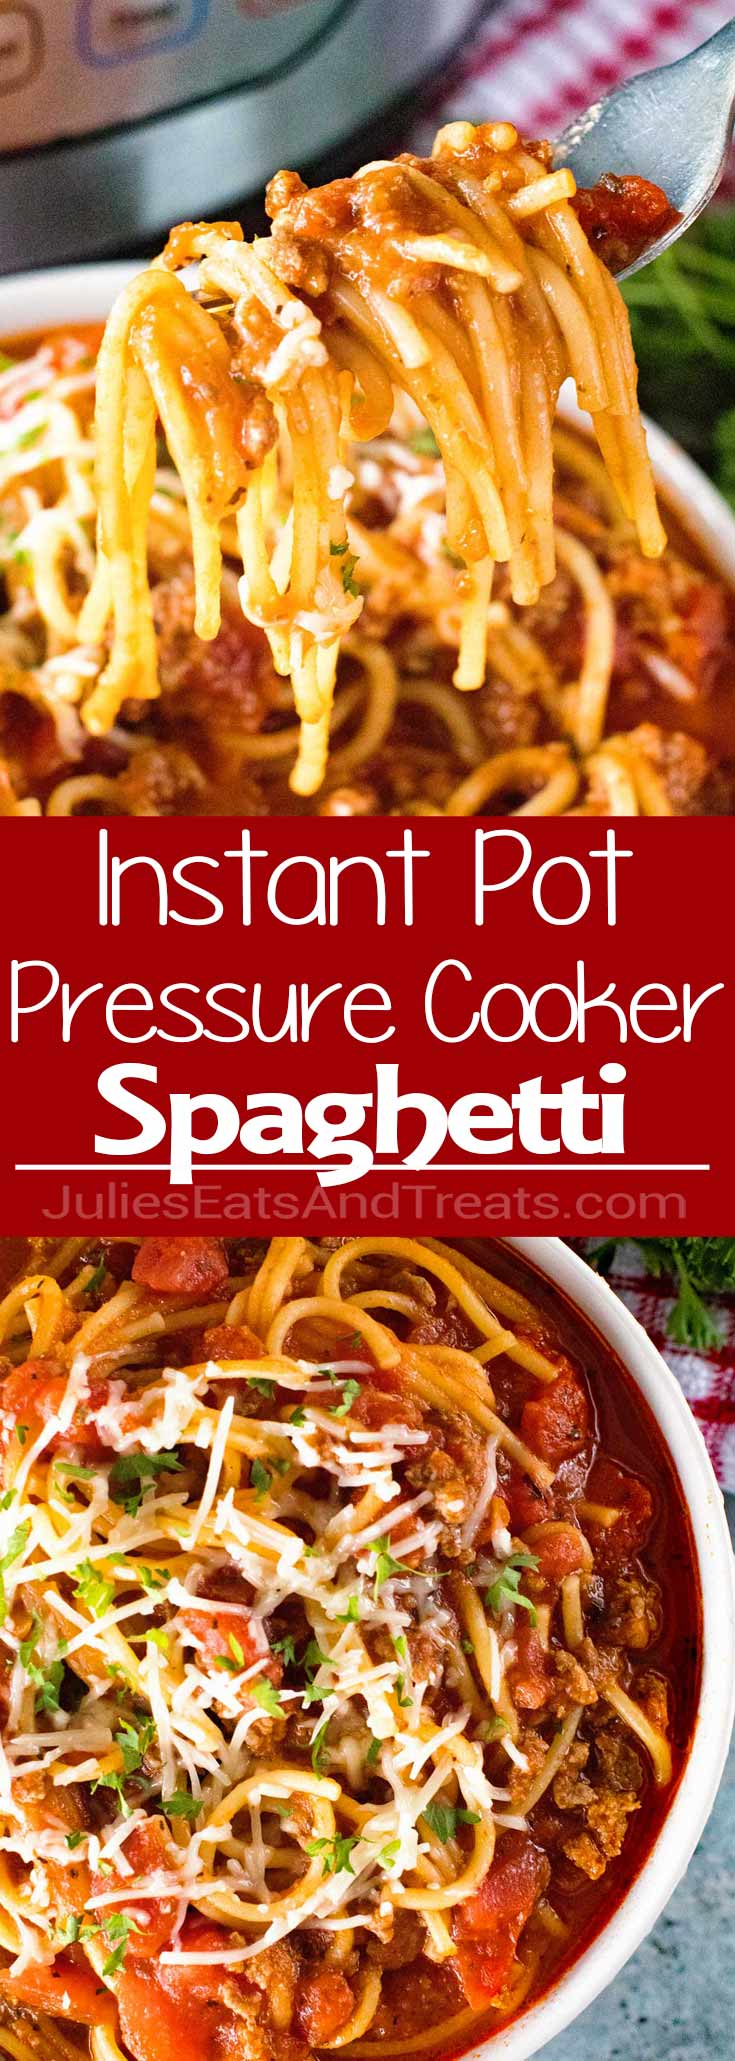 {Instant Pot} Pressure Cooker Spaghetti ~ Quick, Easy Homemade Spaghetti with Meat Sauce Made in Your Pressure Cooker!